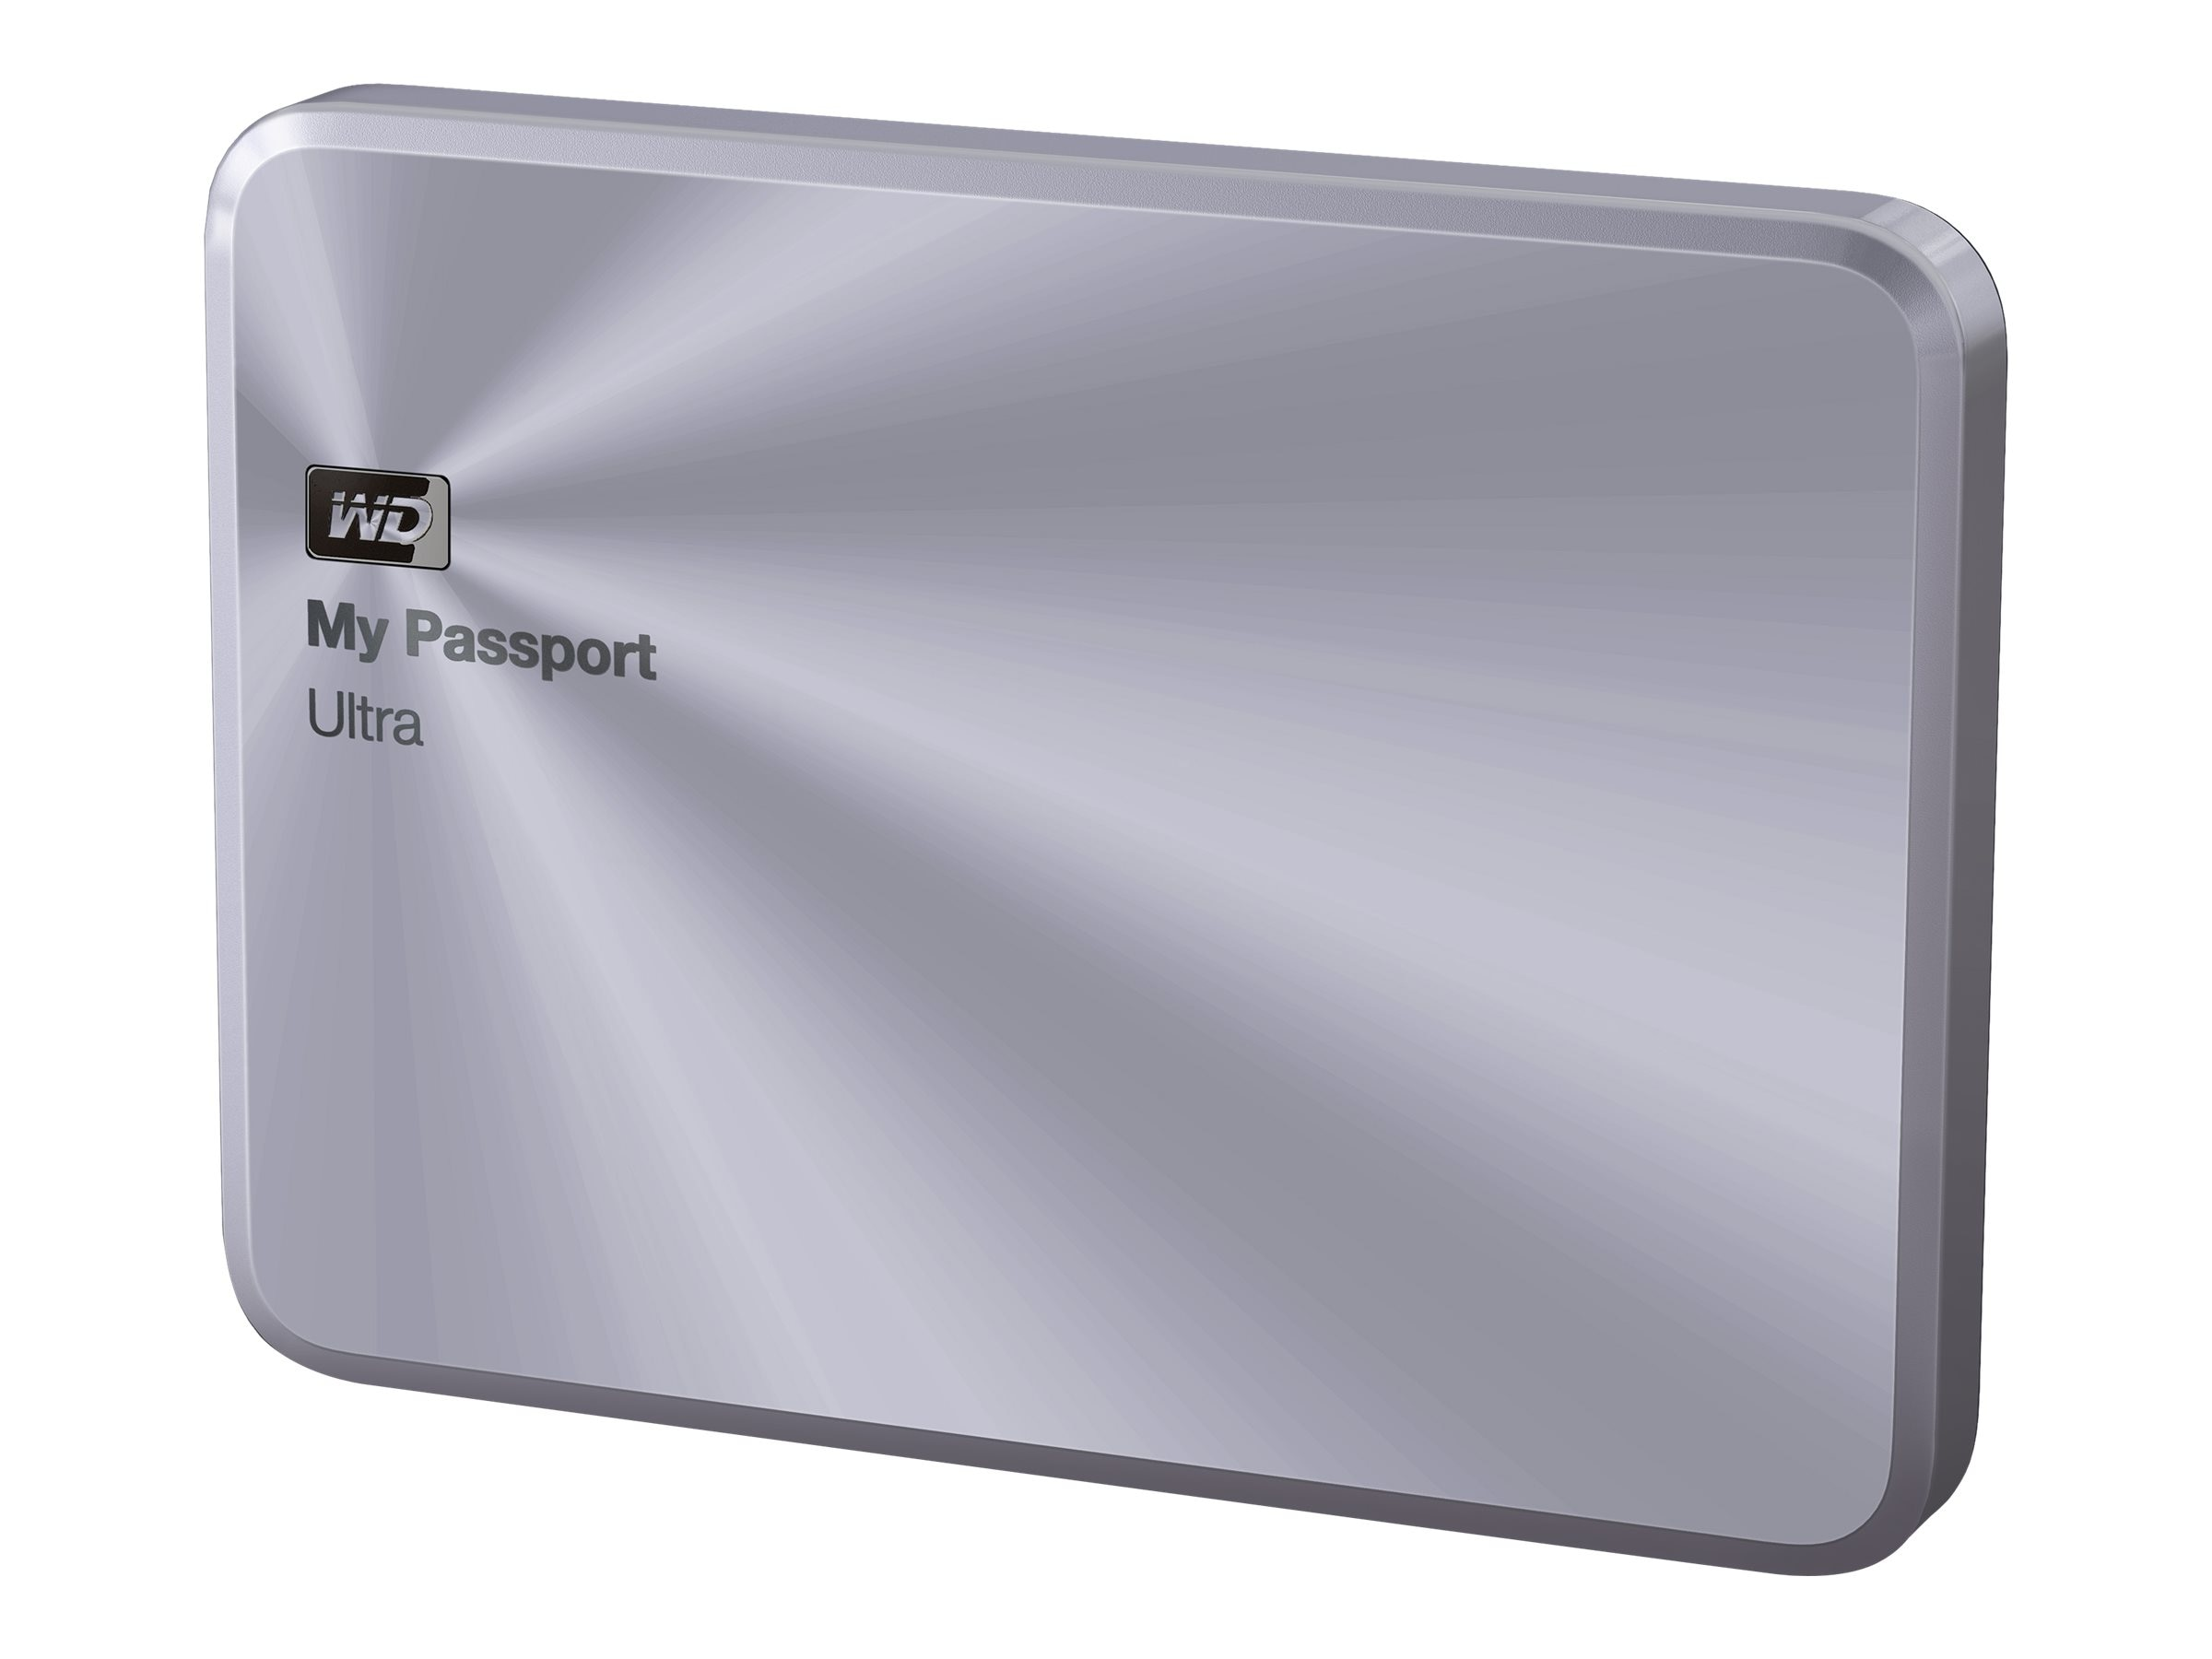 WD 1TB My Passport Ultra Metal Edition USB 3.0 Portable Hard Drive - Silver, WDBTYH0010BSL-NESN, 17654959, Hard Drives - External